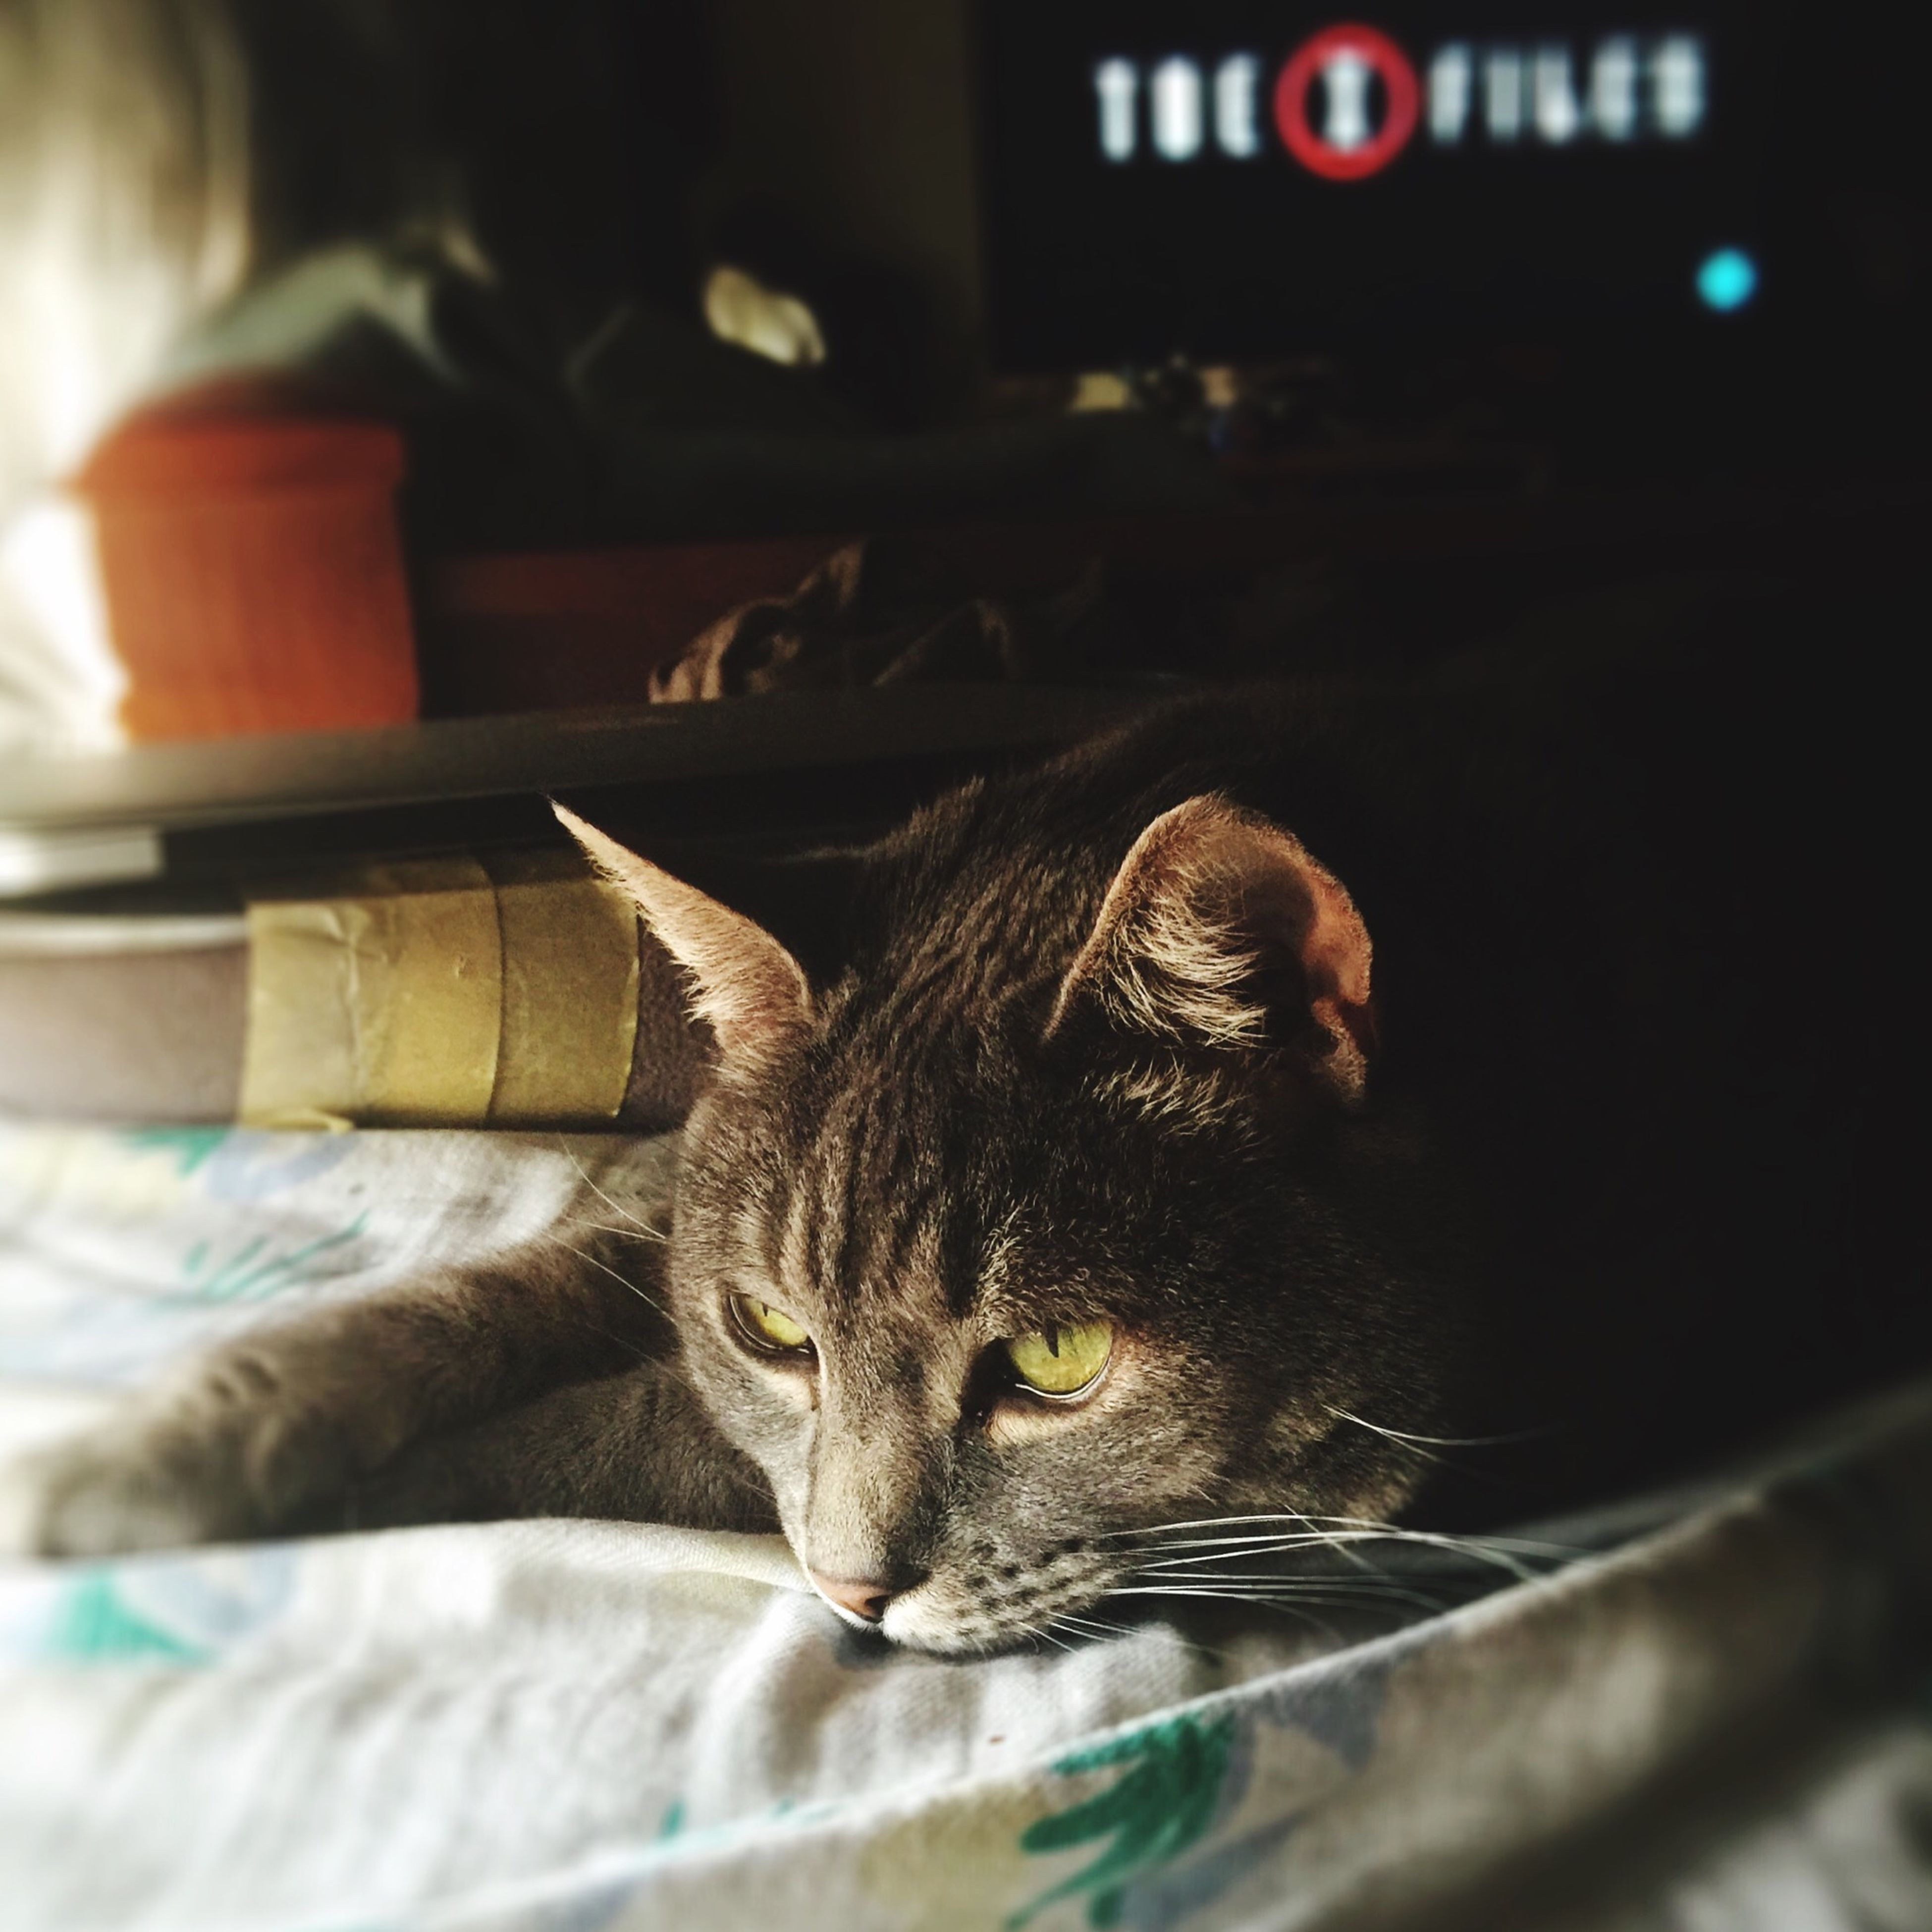 animal themes, one animal, domestic cat, mammal, domestic animals, pets, cat, indoors, feline, whisker, relaxation, focus on foreground, close-up, selective focus, animal head, lying down, resting, animal body part, looking away, no people